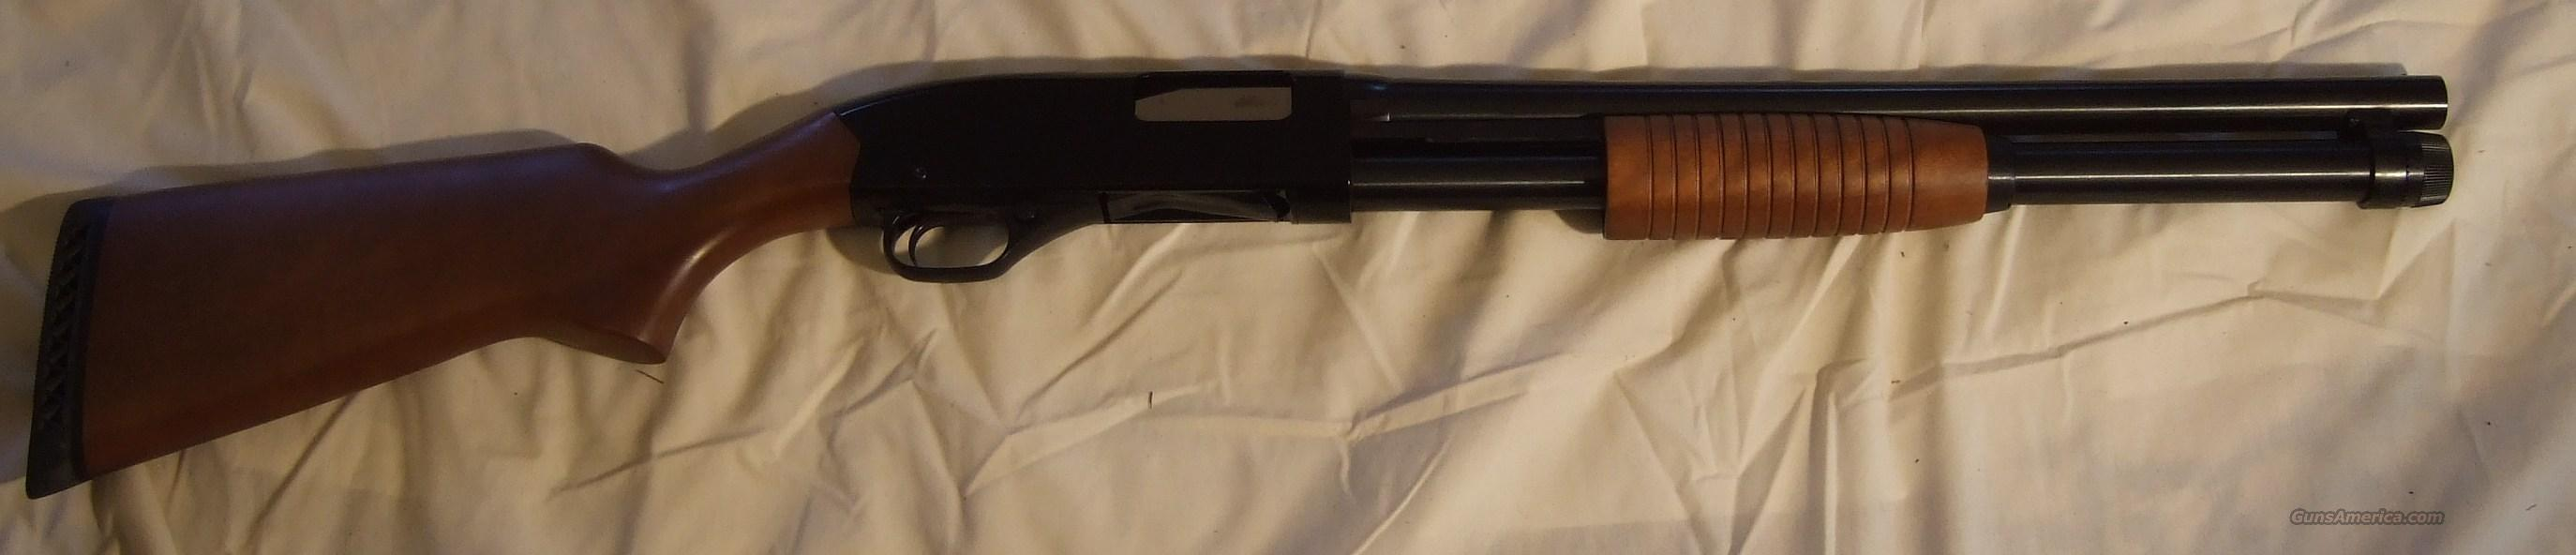 Winchester 1300 Defender    Guns > Shotguns > Winchester Shotguns - Modern > Pump Action > Defense/Tactical